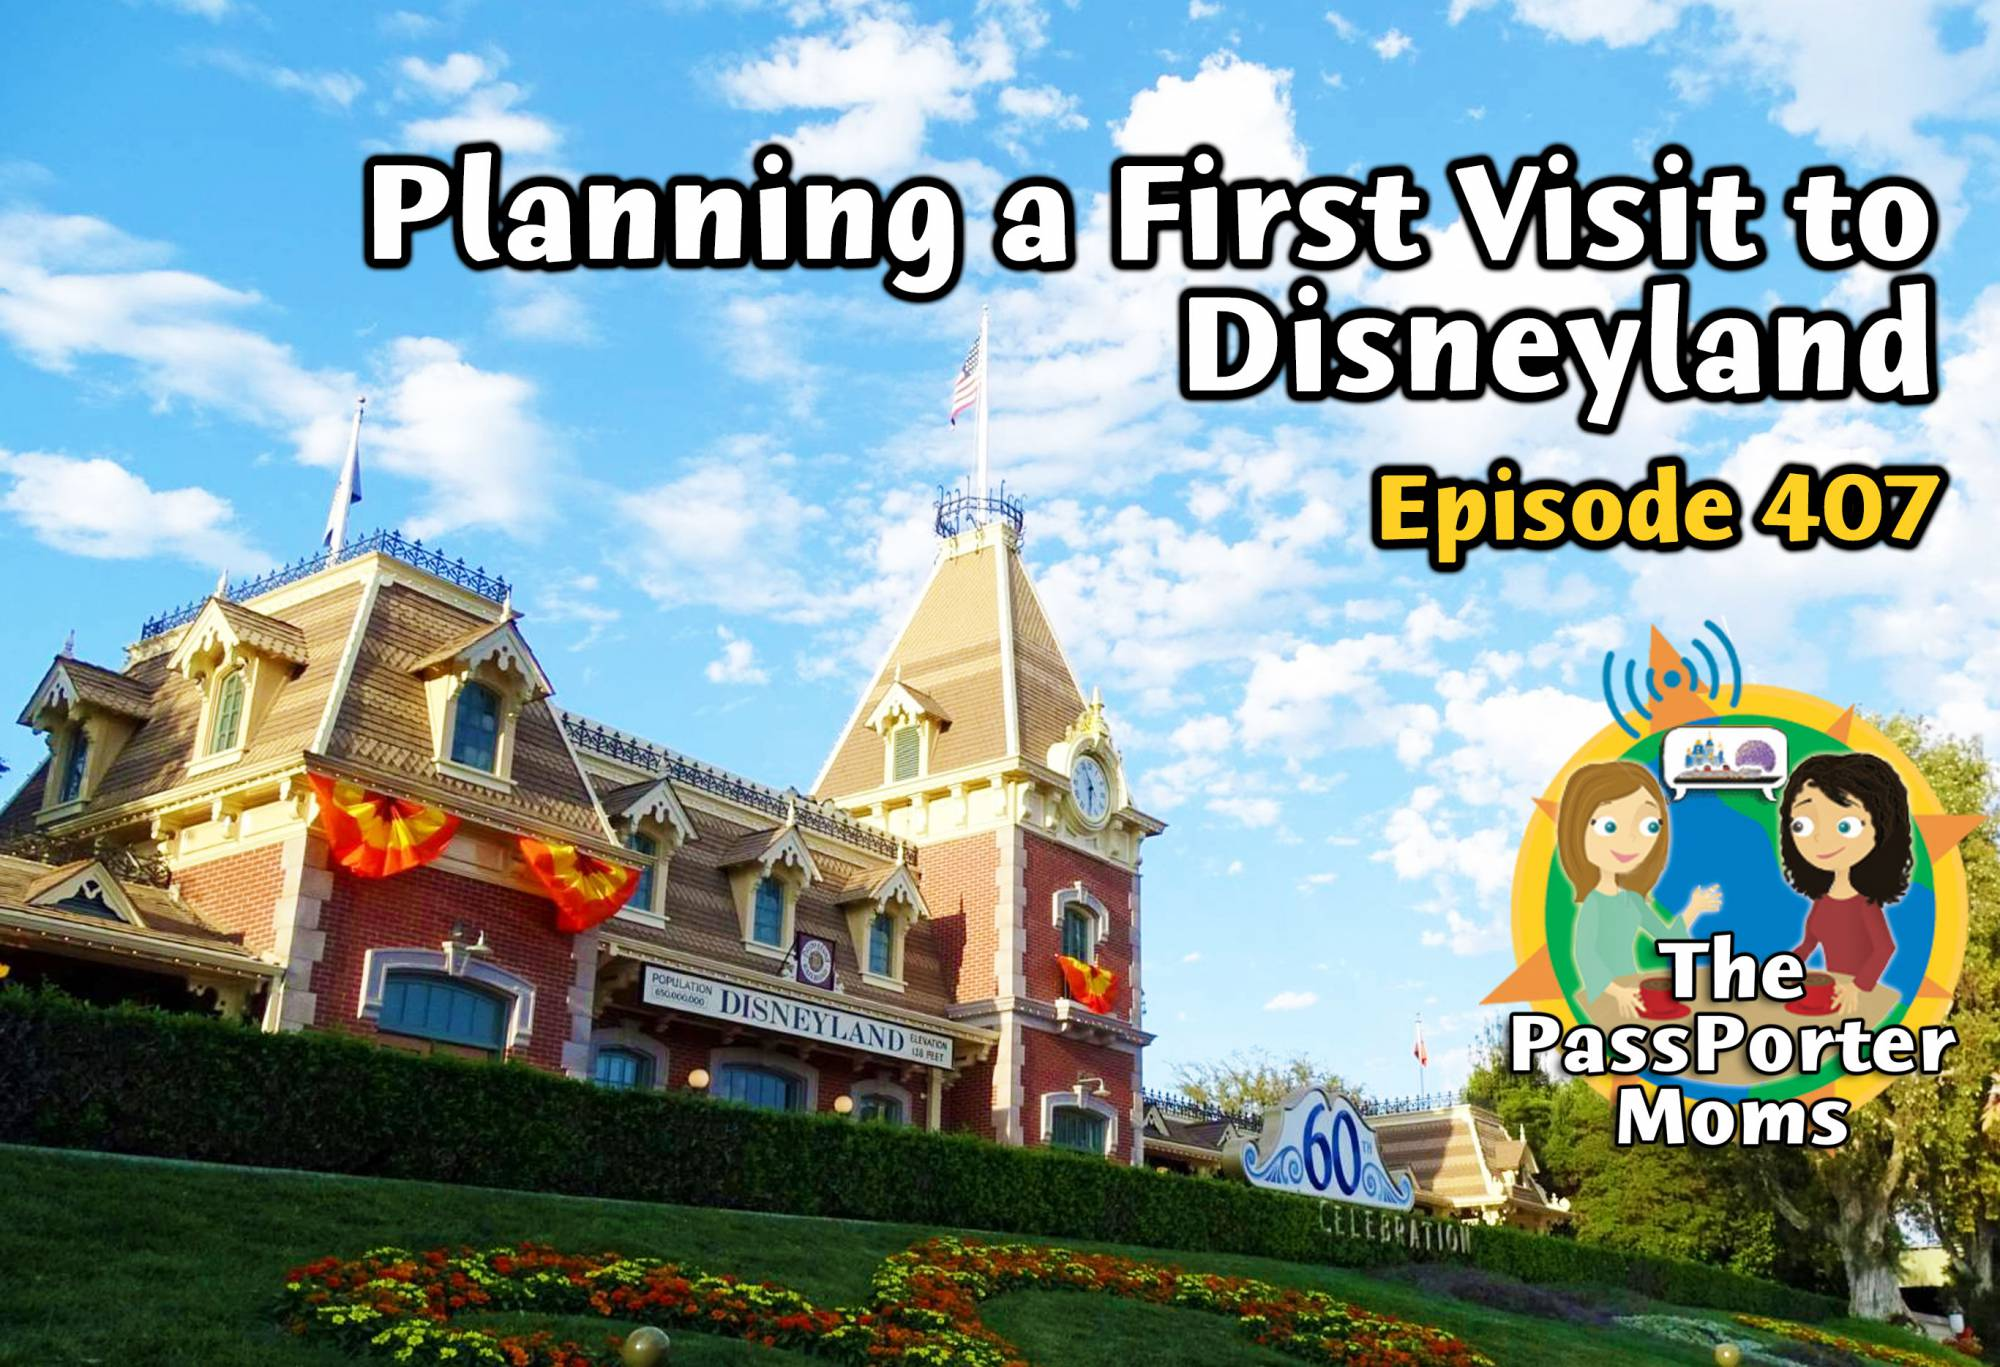 Planning a First Visit to Disneyland